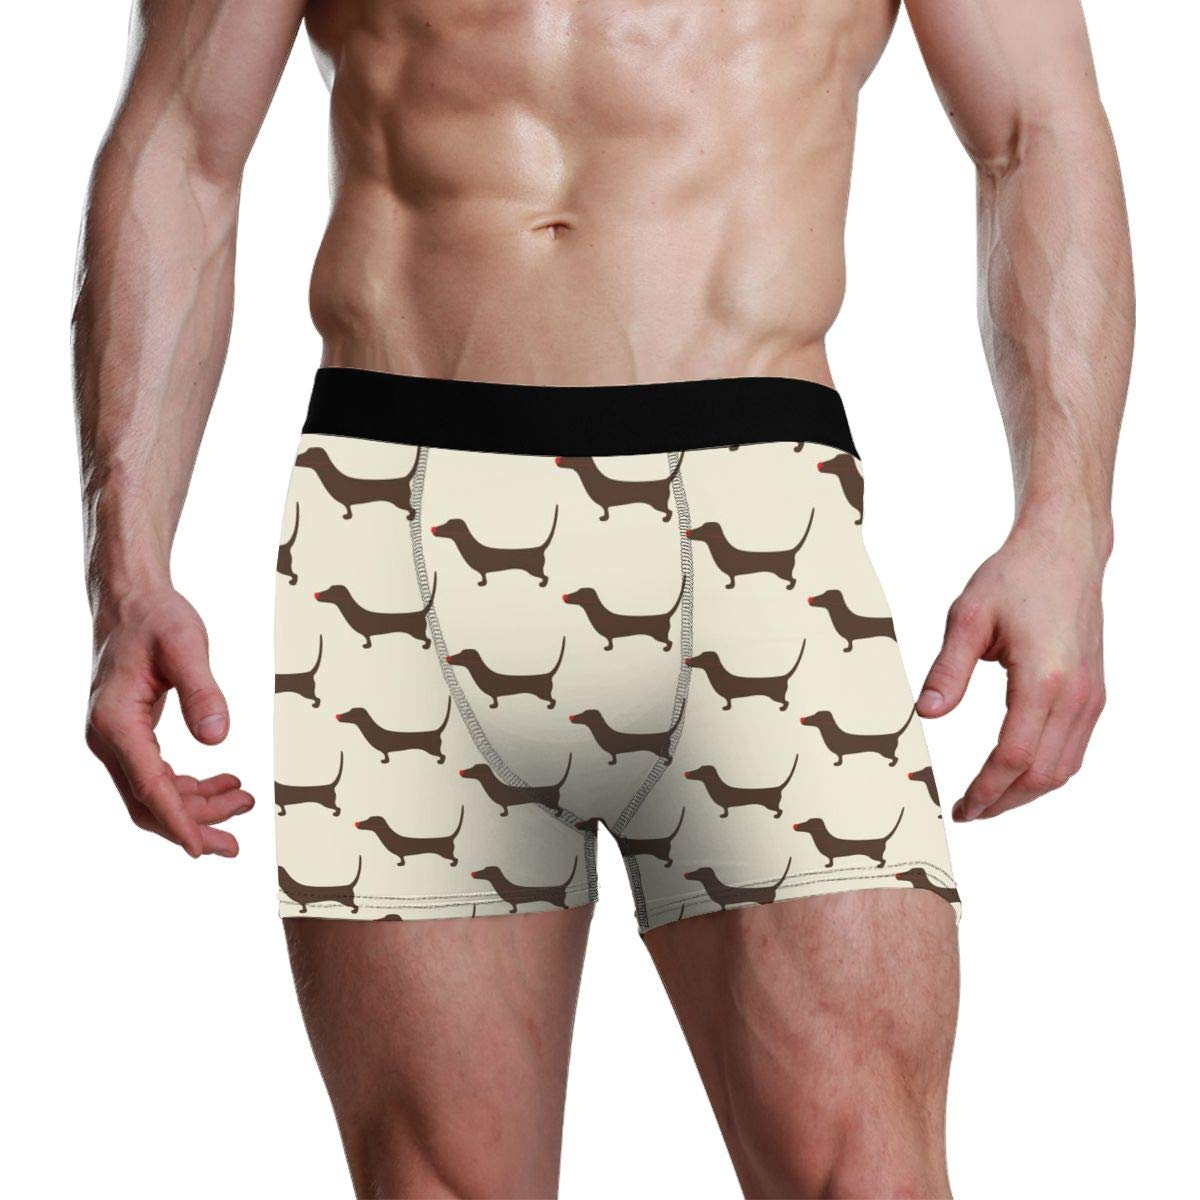 Yiyingzhang Mens Breathable Underwear Christmas Dachshund Pattern Comfortable Boxer Briefs